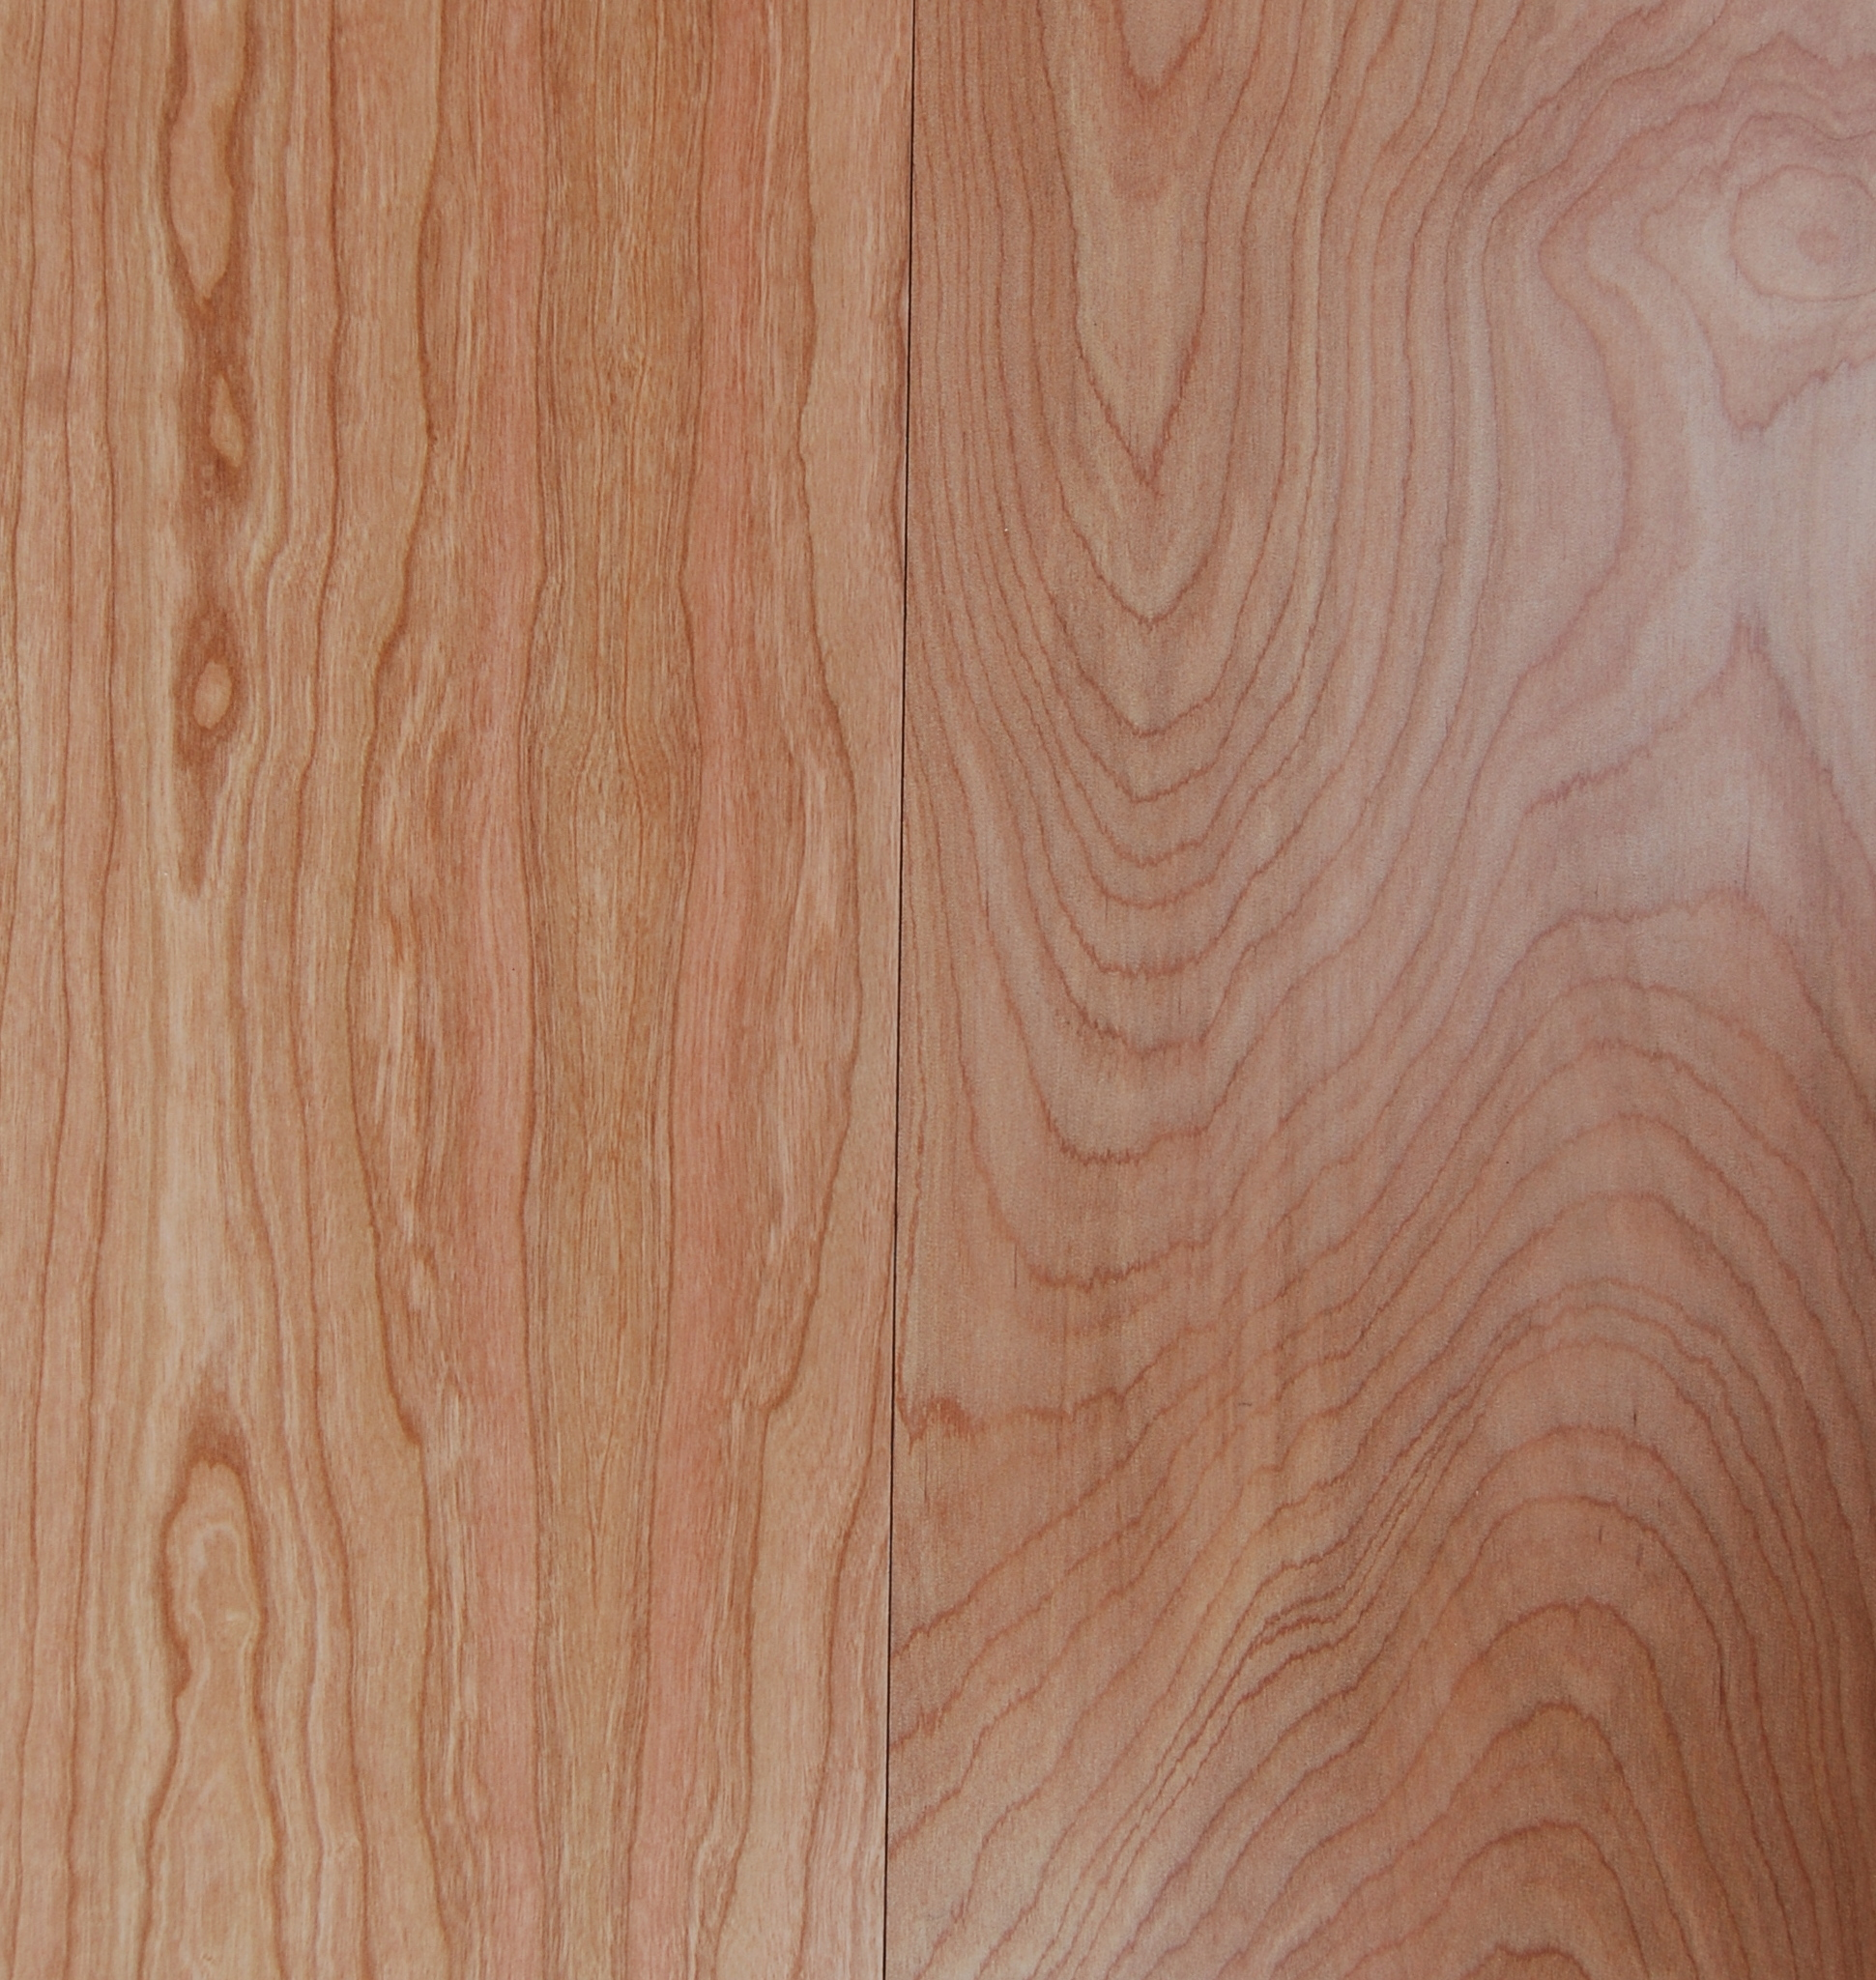 NSMT natural cherry and red birch finishes